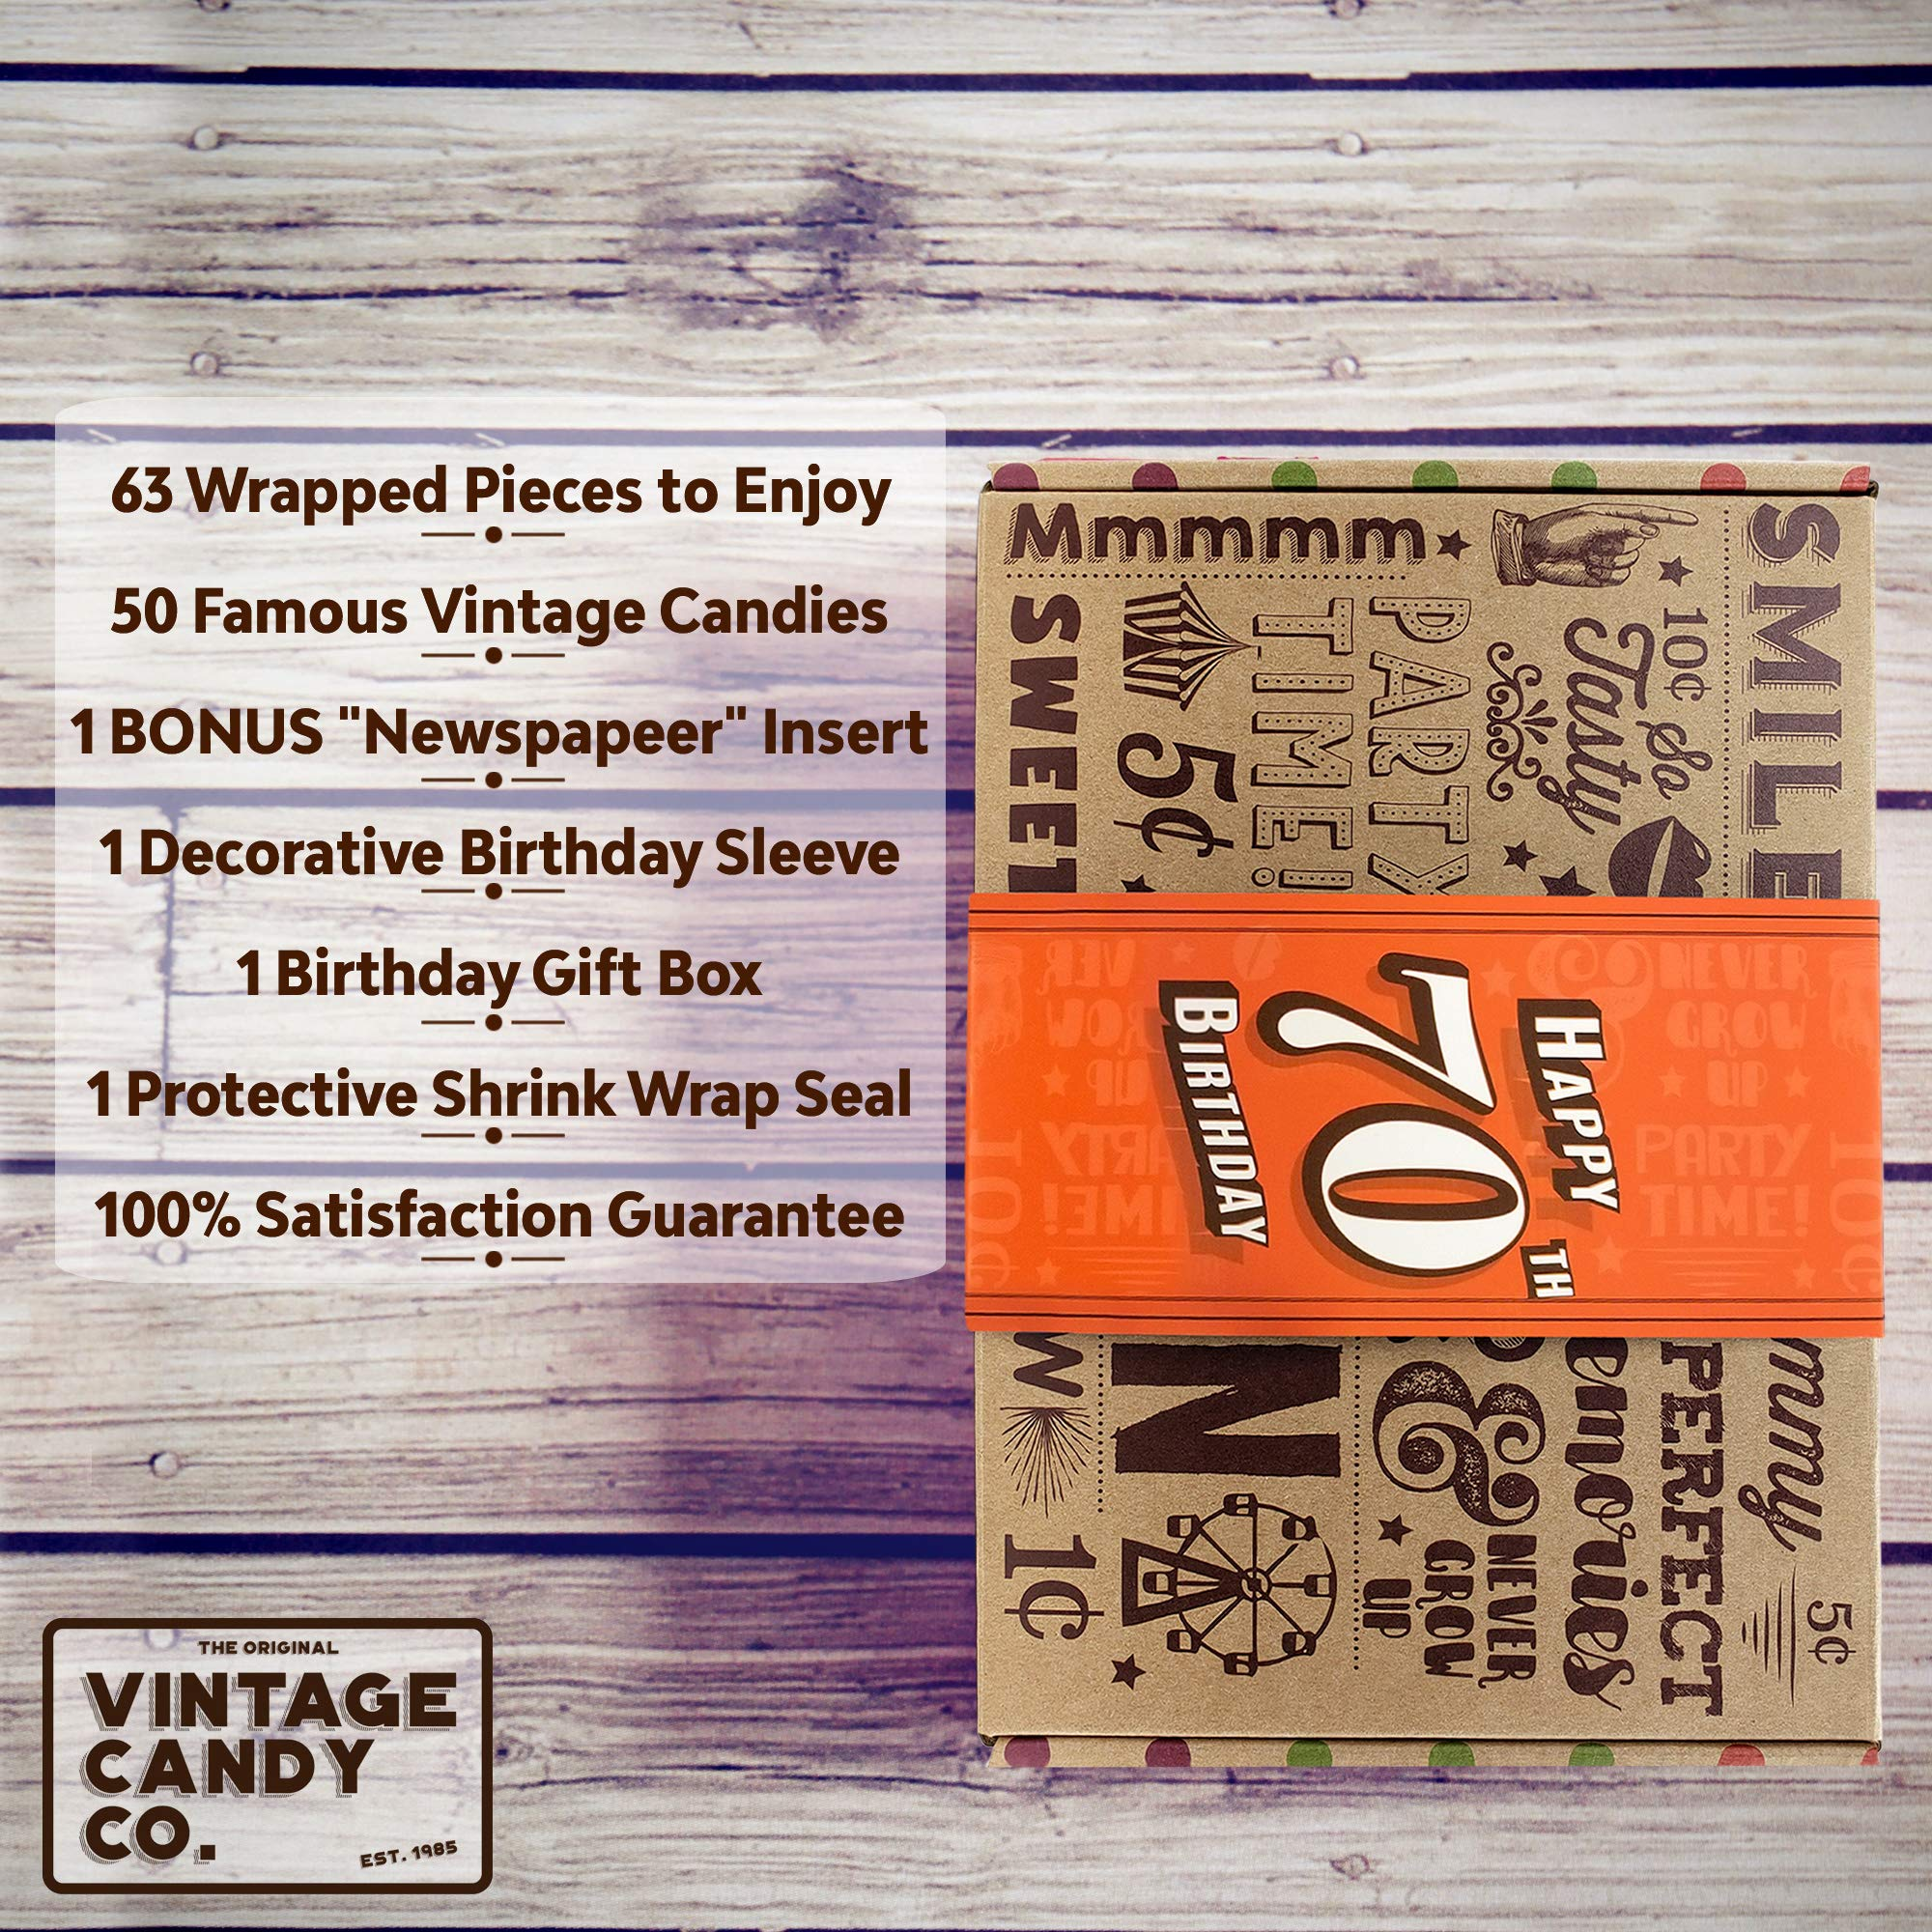 VINTAGE CANDY CO. 70TH BIRTHDAY RETRO CANDY GIFT BOX - 1949 Decade Nostalgic Childhood Candies - Fun Gag Gift Basket for Milestone SEVENTIETH Birthday - PERFECT For Man Or Woman Turning 70 Years Old by Vintage Candy Co. (Image #3)